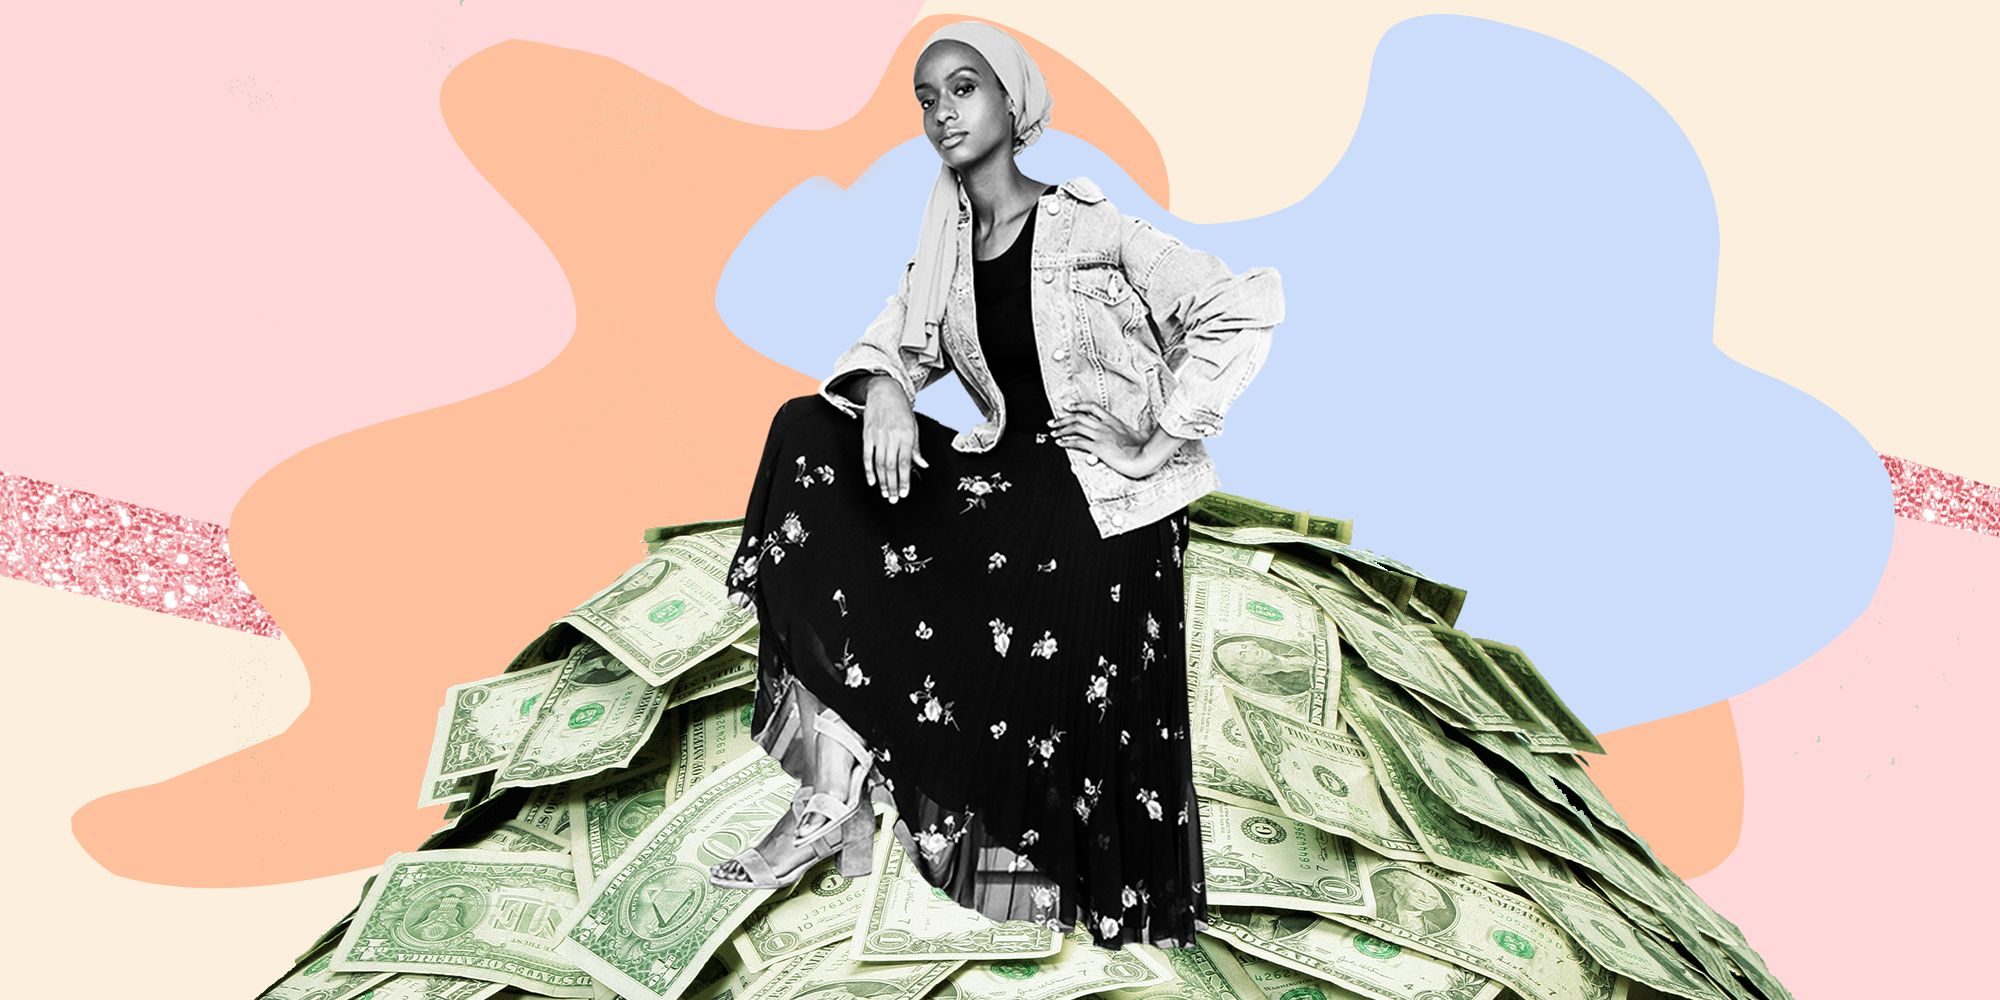 7 Women Reveal What It's Like to Make More Money Than Their Dudes